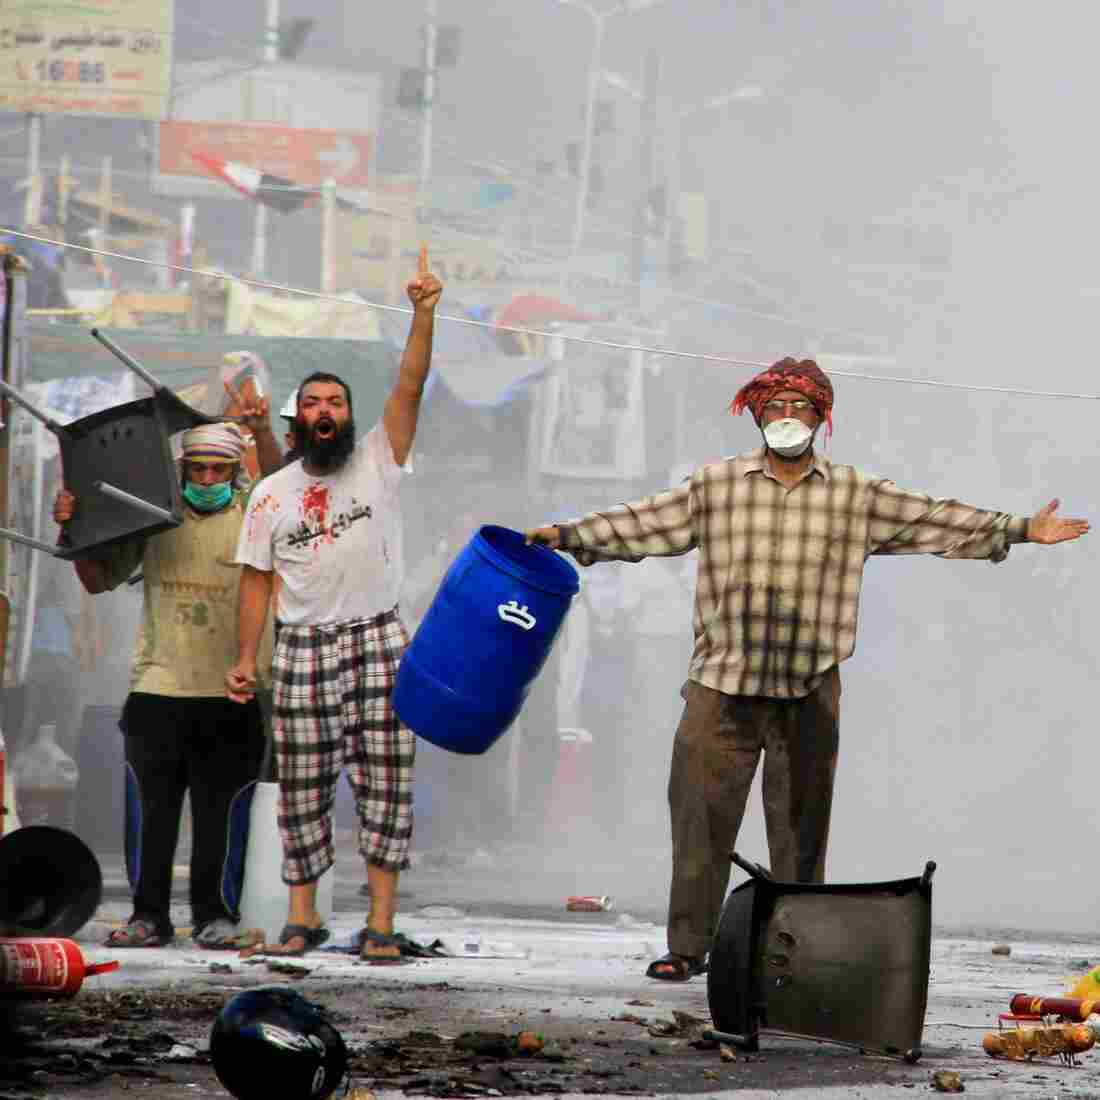 Protesters taunt security forces moving in to clear one protest camp near the Rabaa al-Adawiya mosque in Cairo. The military-backed government described the camps as violent and unlawful.